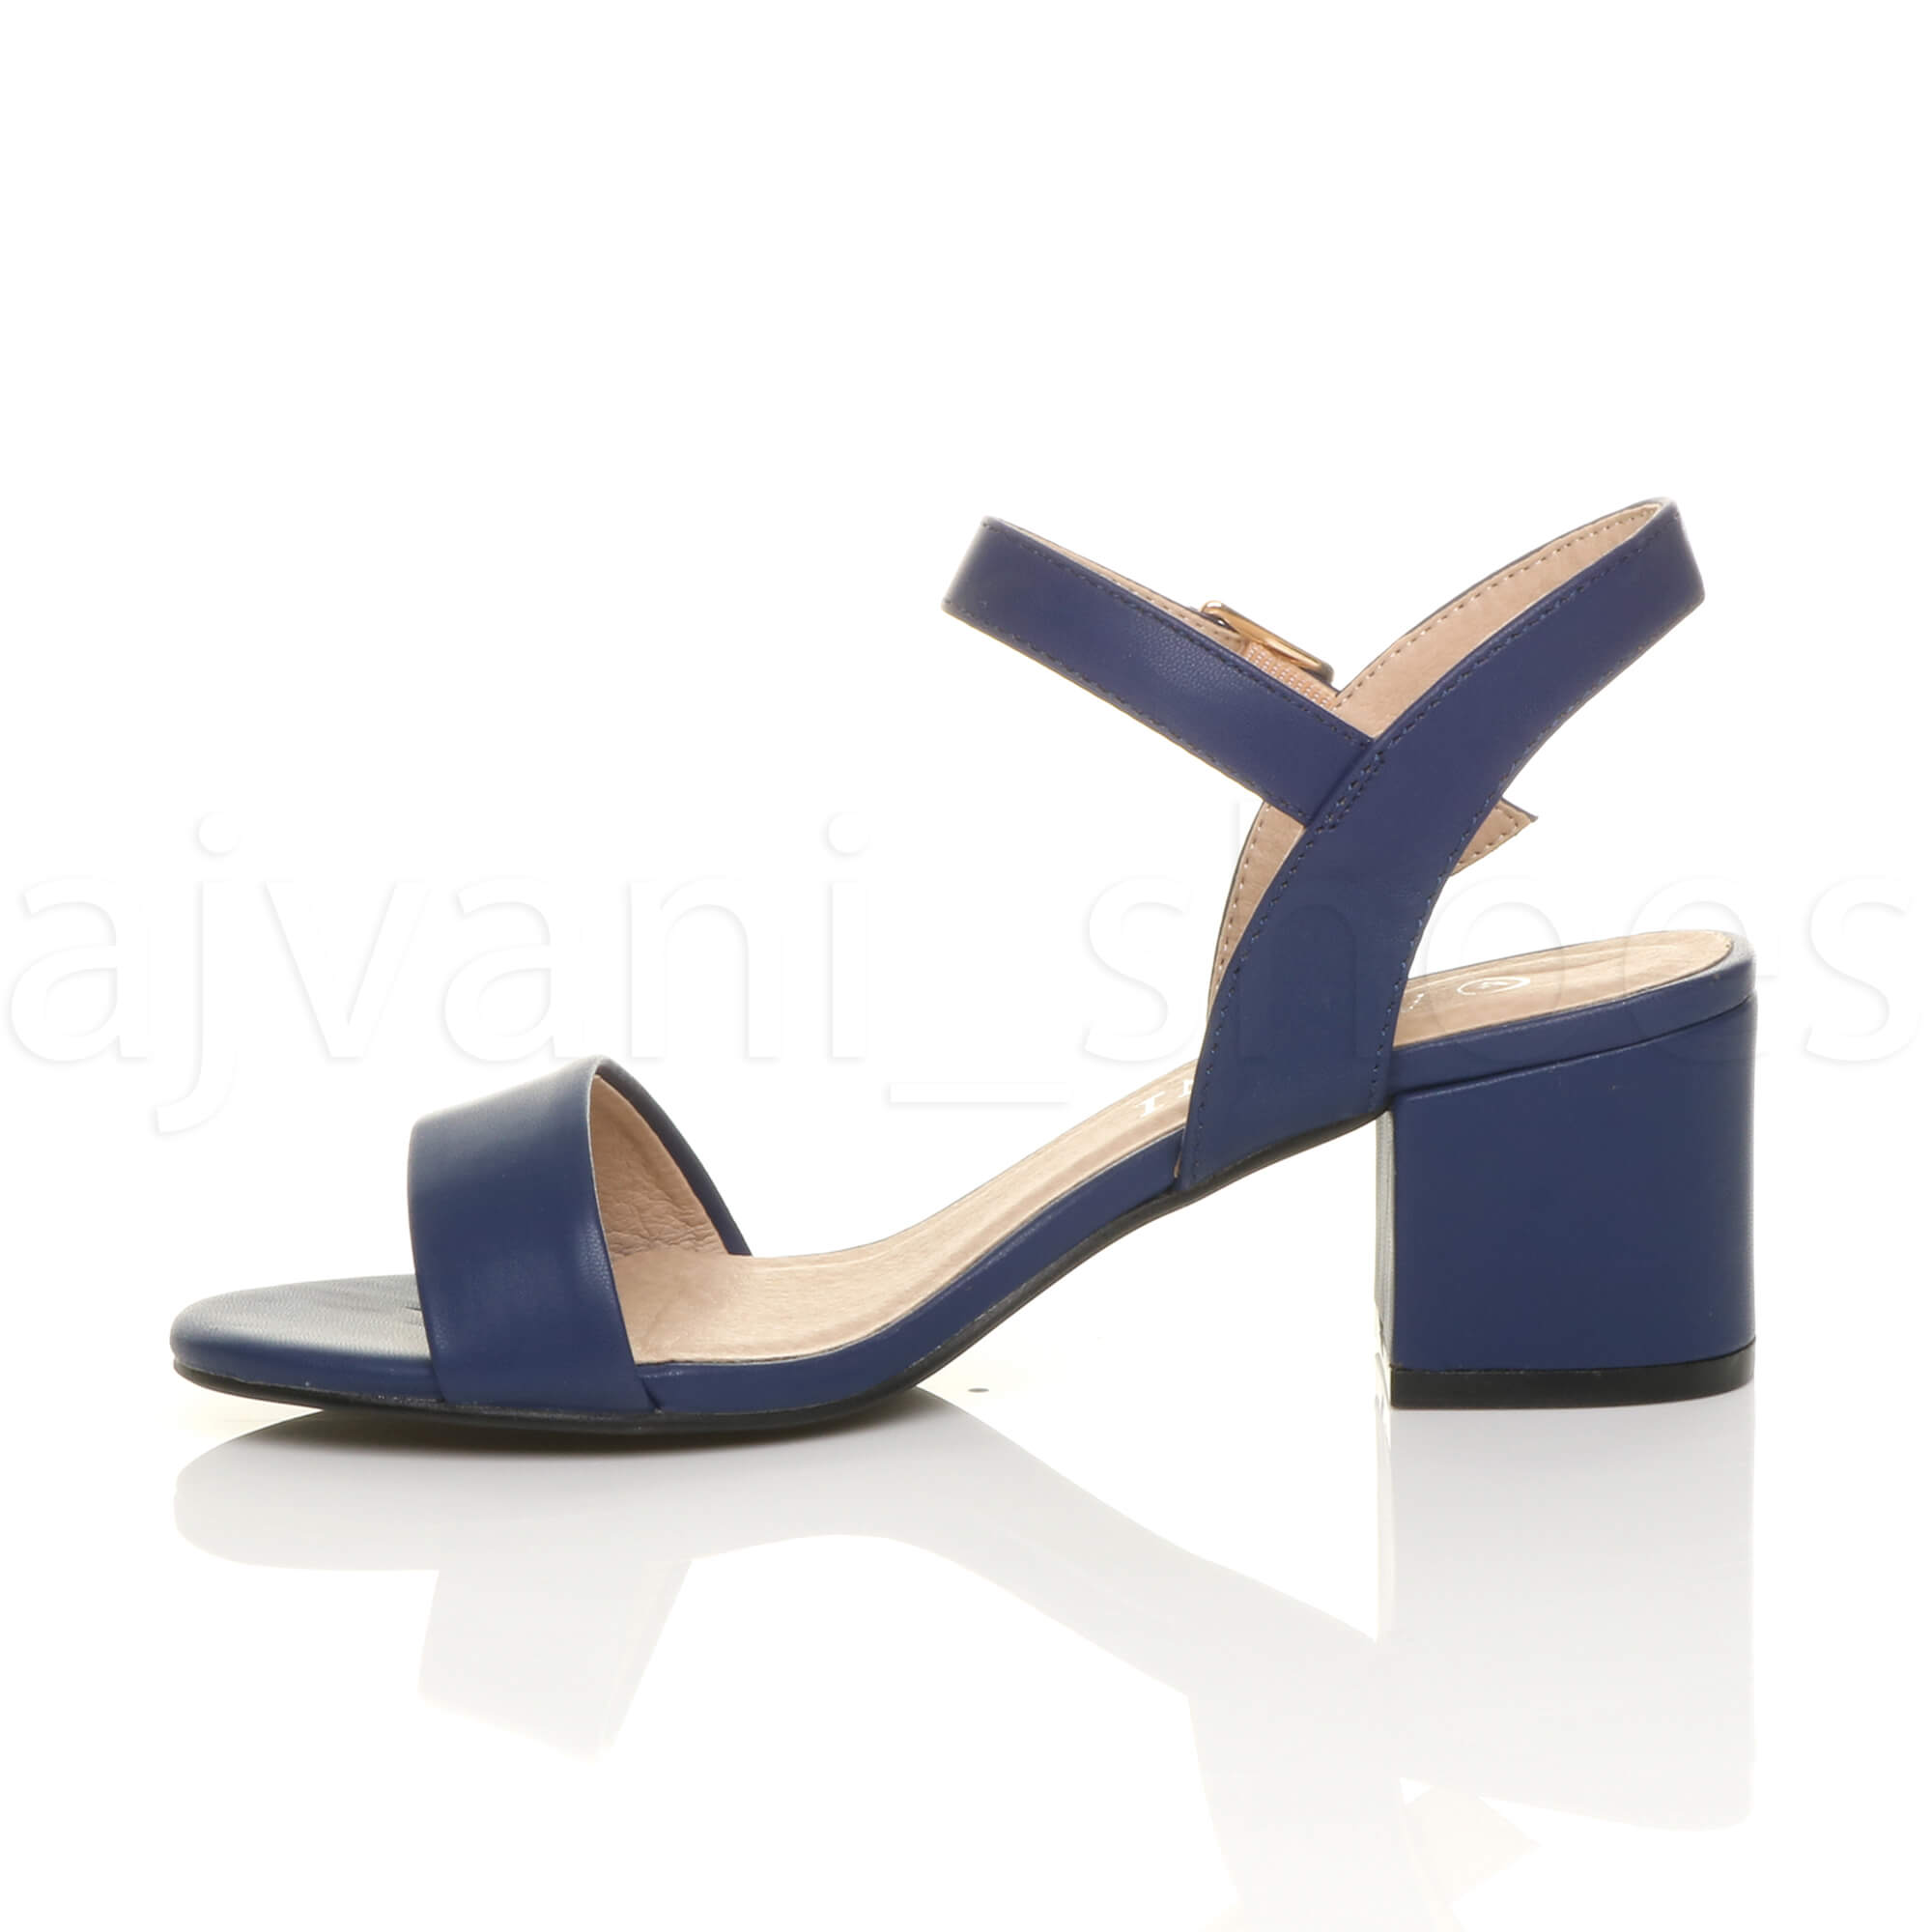 WOMENS-LADIES-MID-LOW-BLOCK-HEEL-PEEP-TOE-ANKLE-STRAP-STRAPPY-PARTY-SANDALS-SIZE thumbnail 84